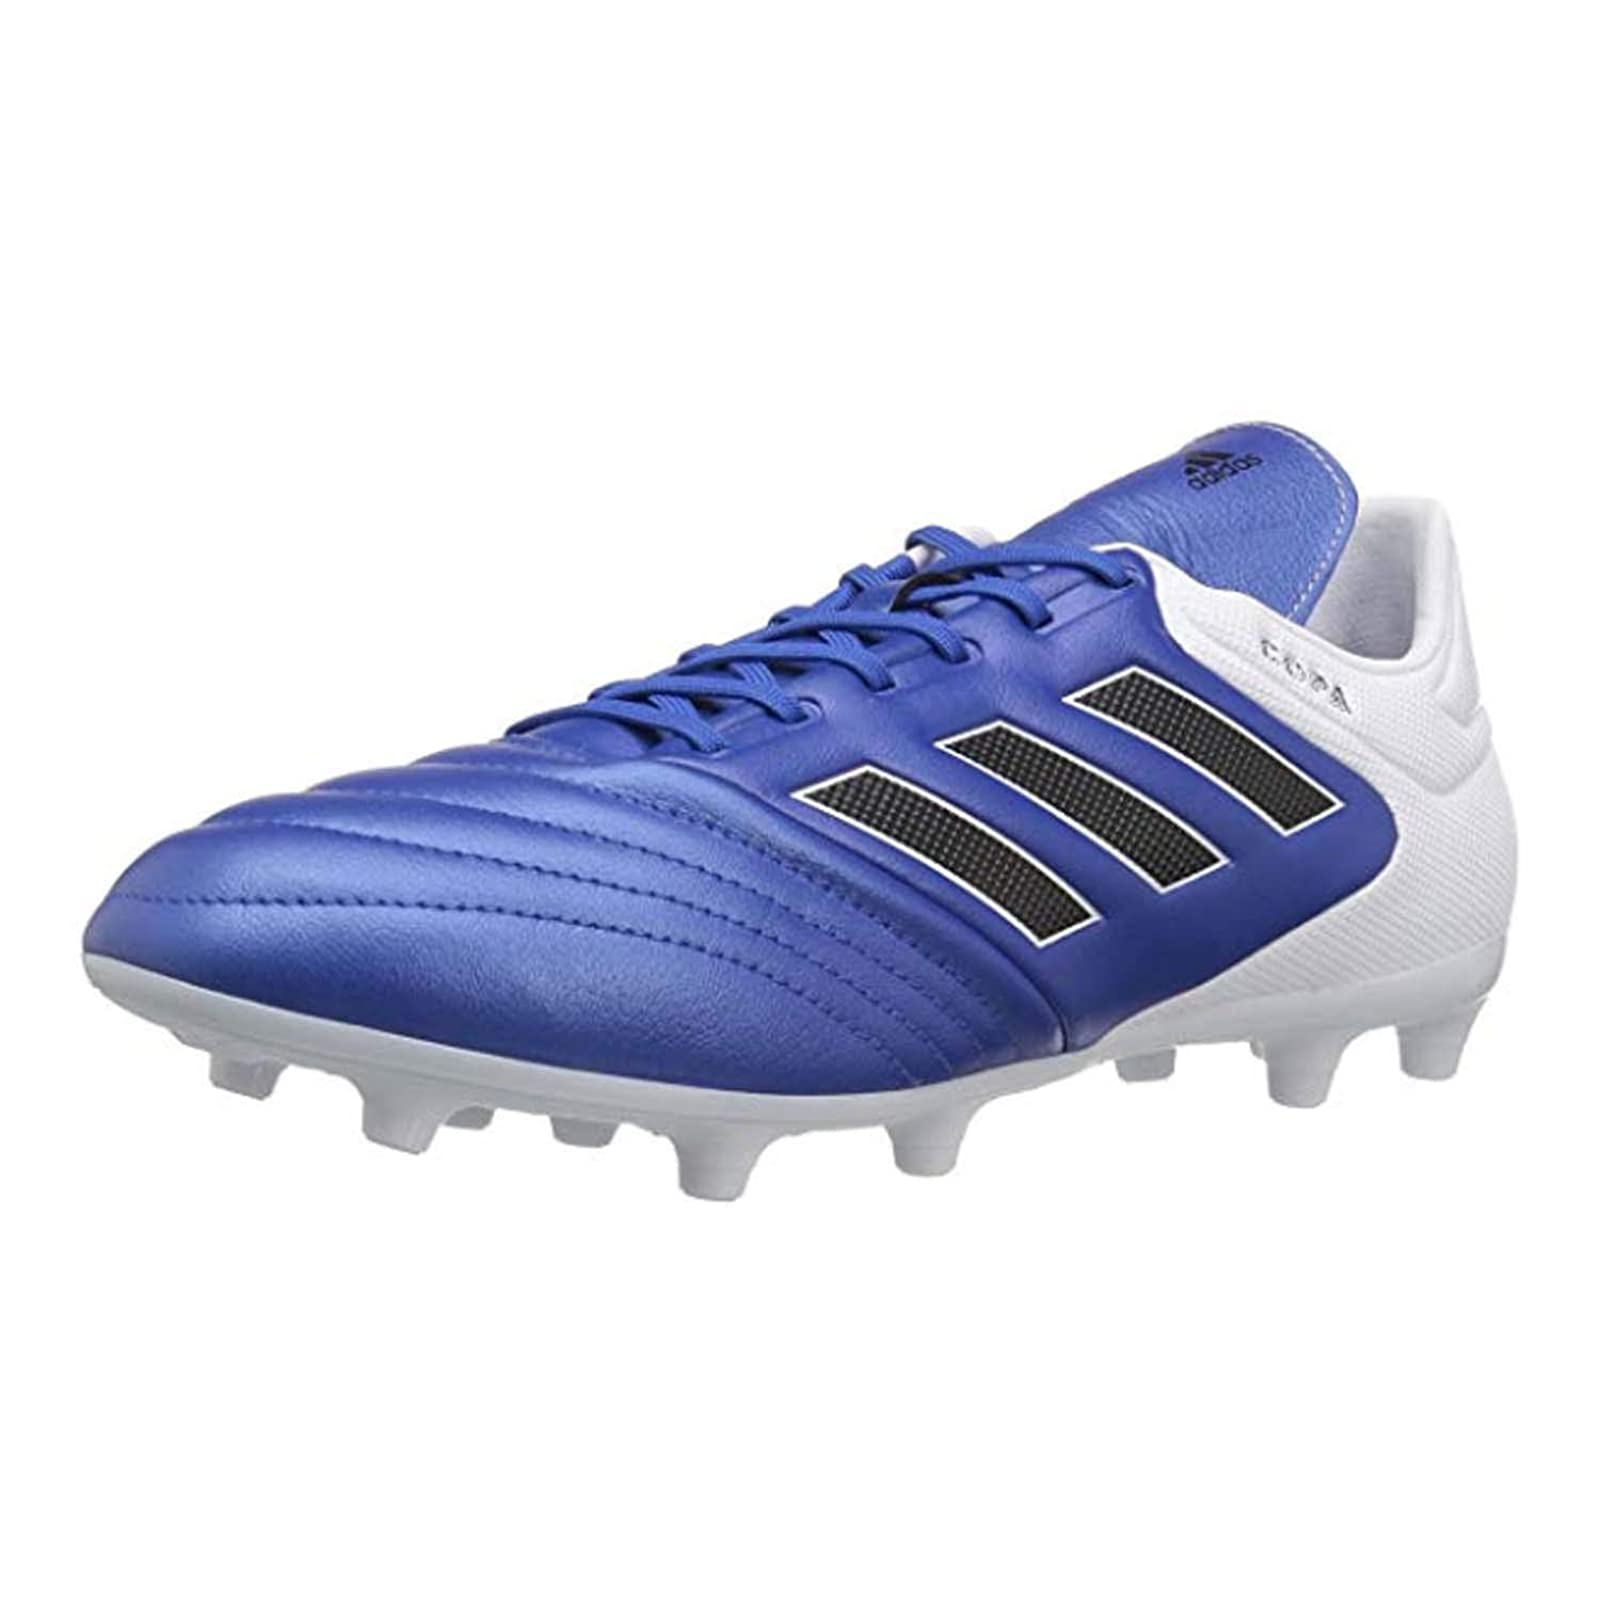 adidas Men's copa 17.3 fg BA9717 Blue/Black/White - 4